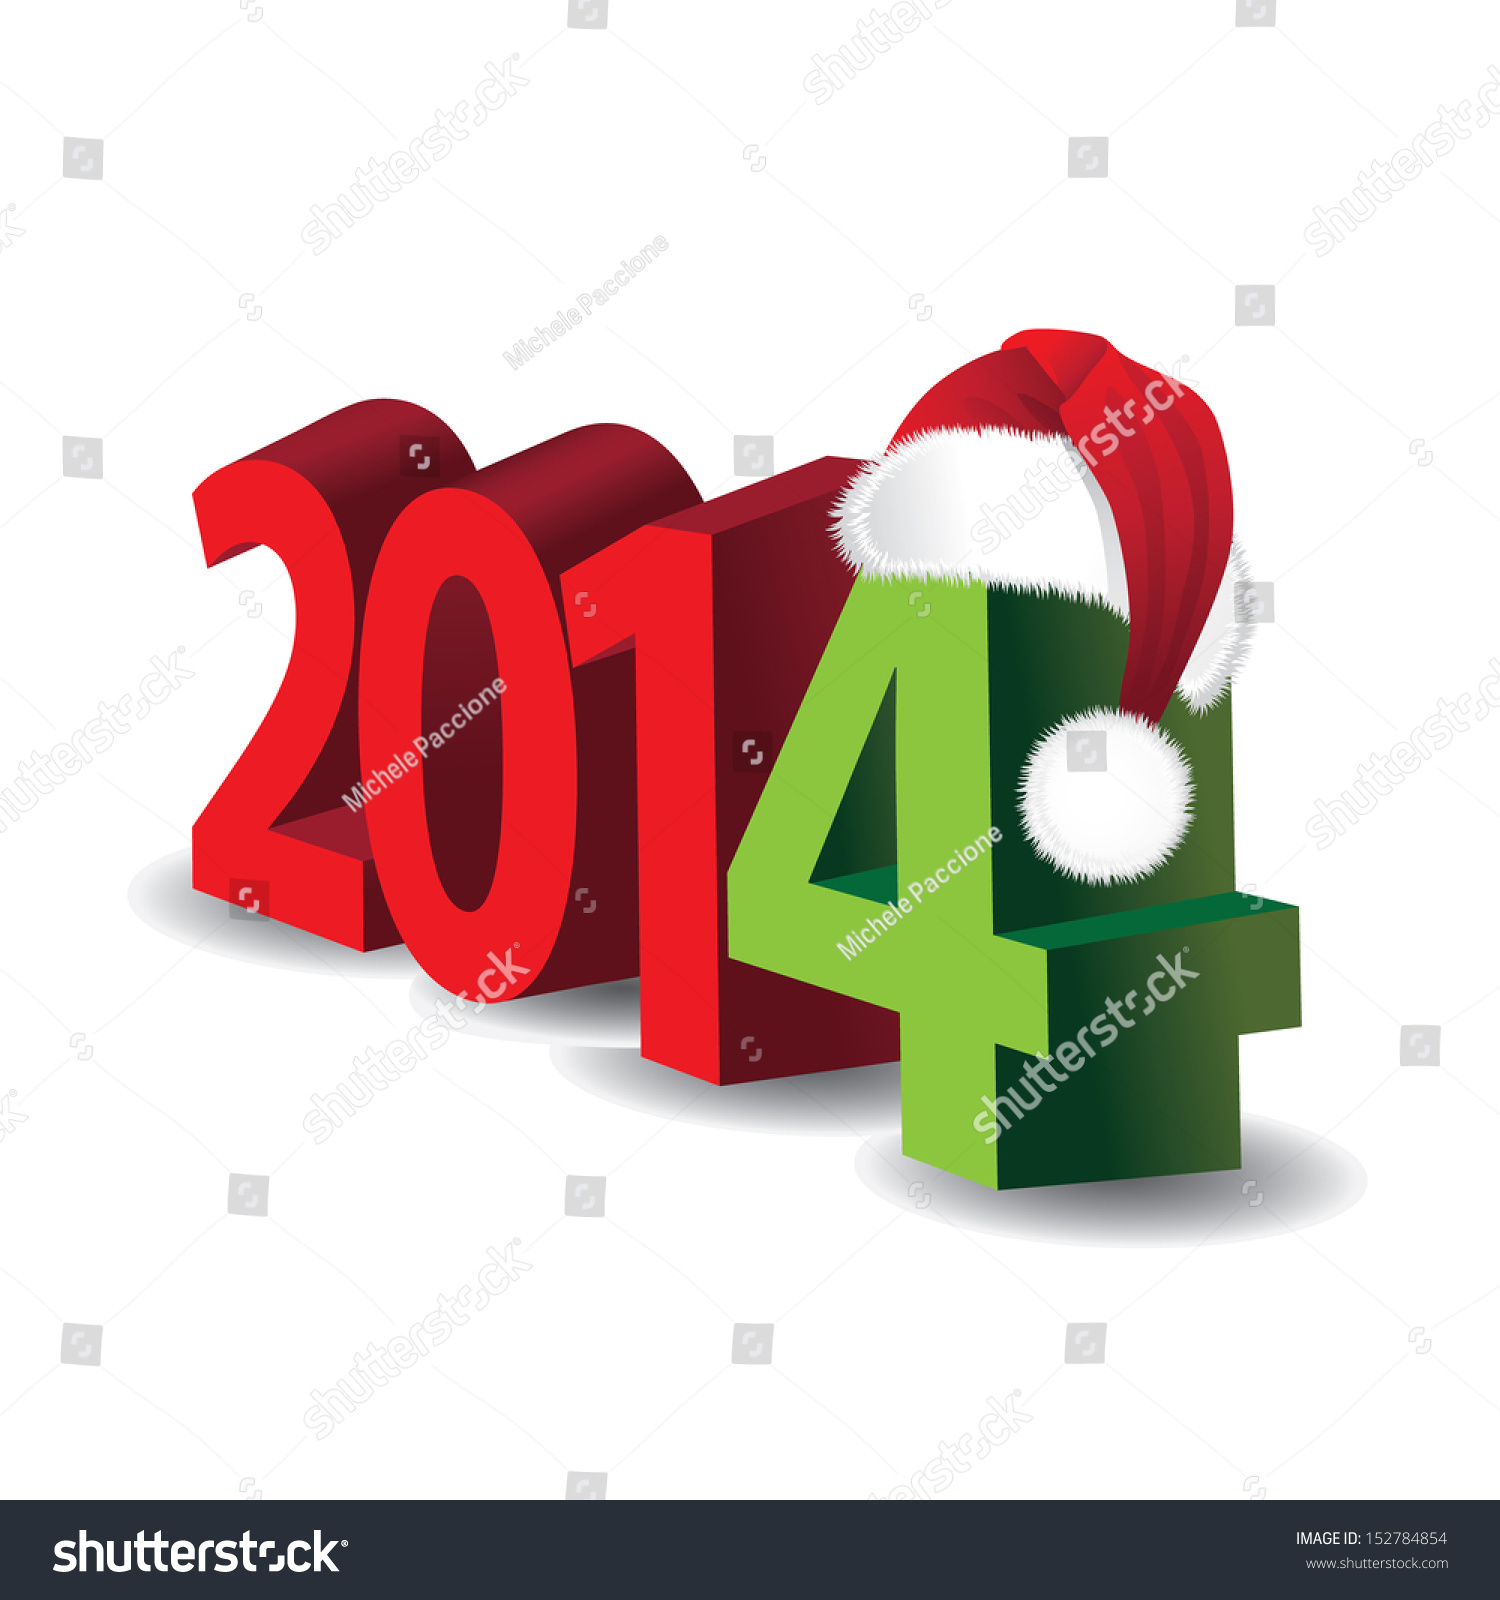 2014 3 D New Year Holiday Christmas Stock Vector (Royalty Free ...